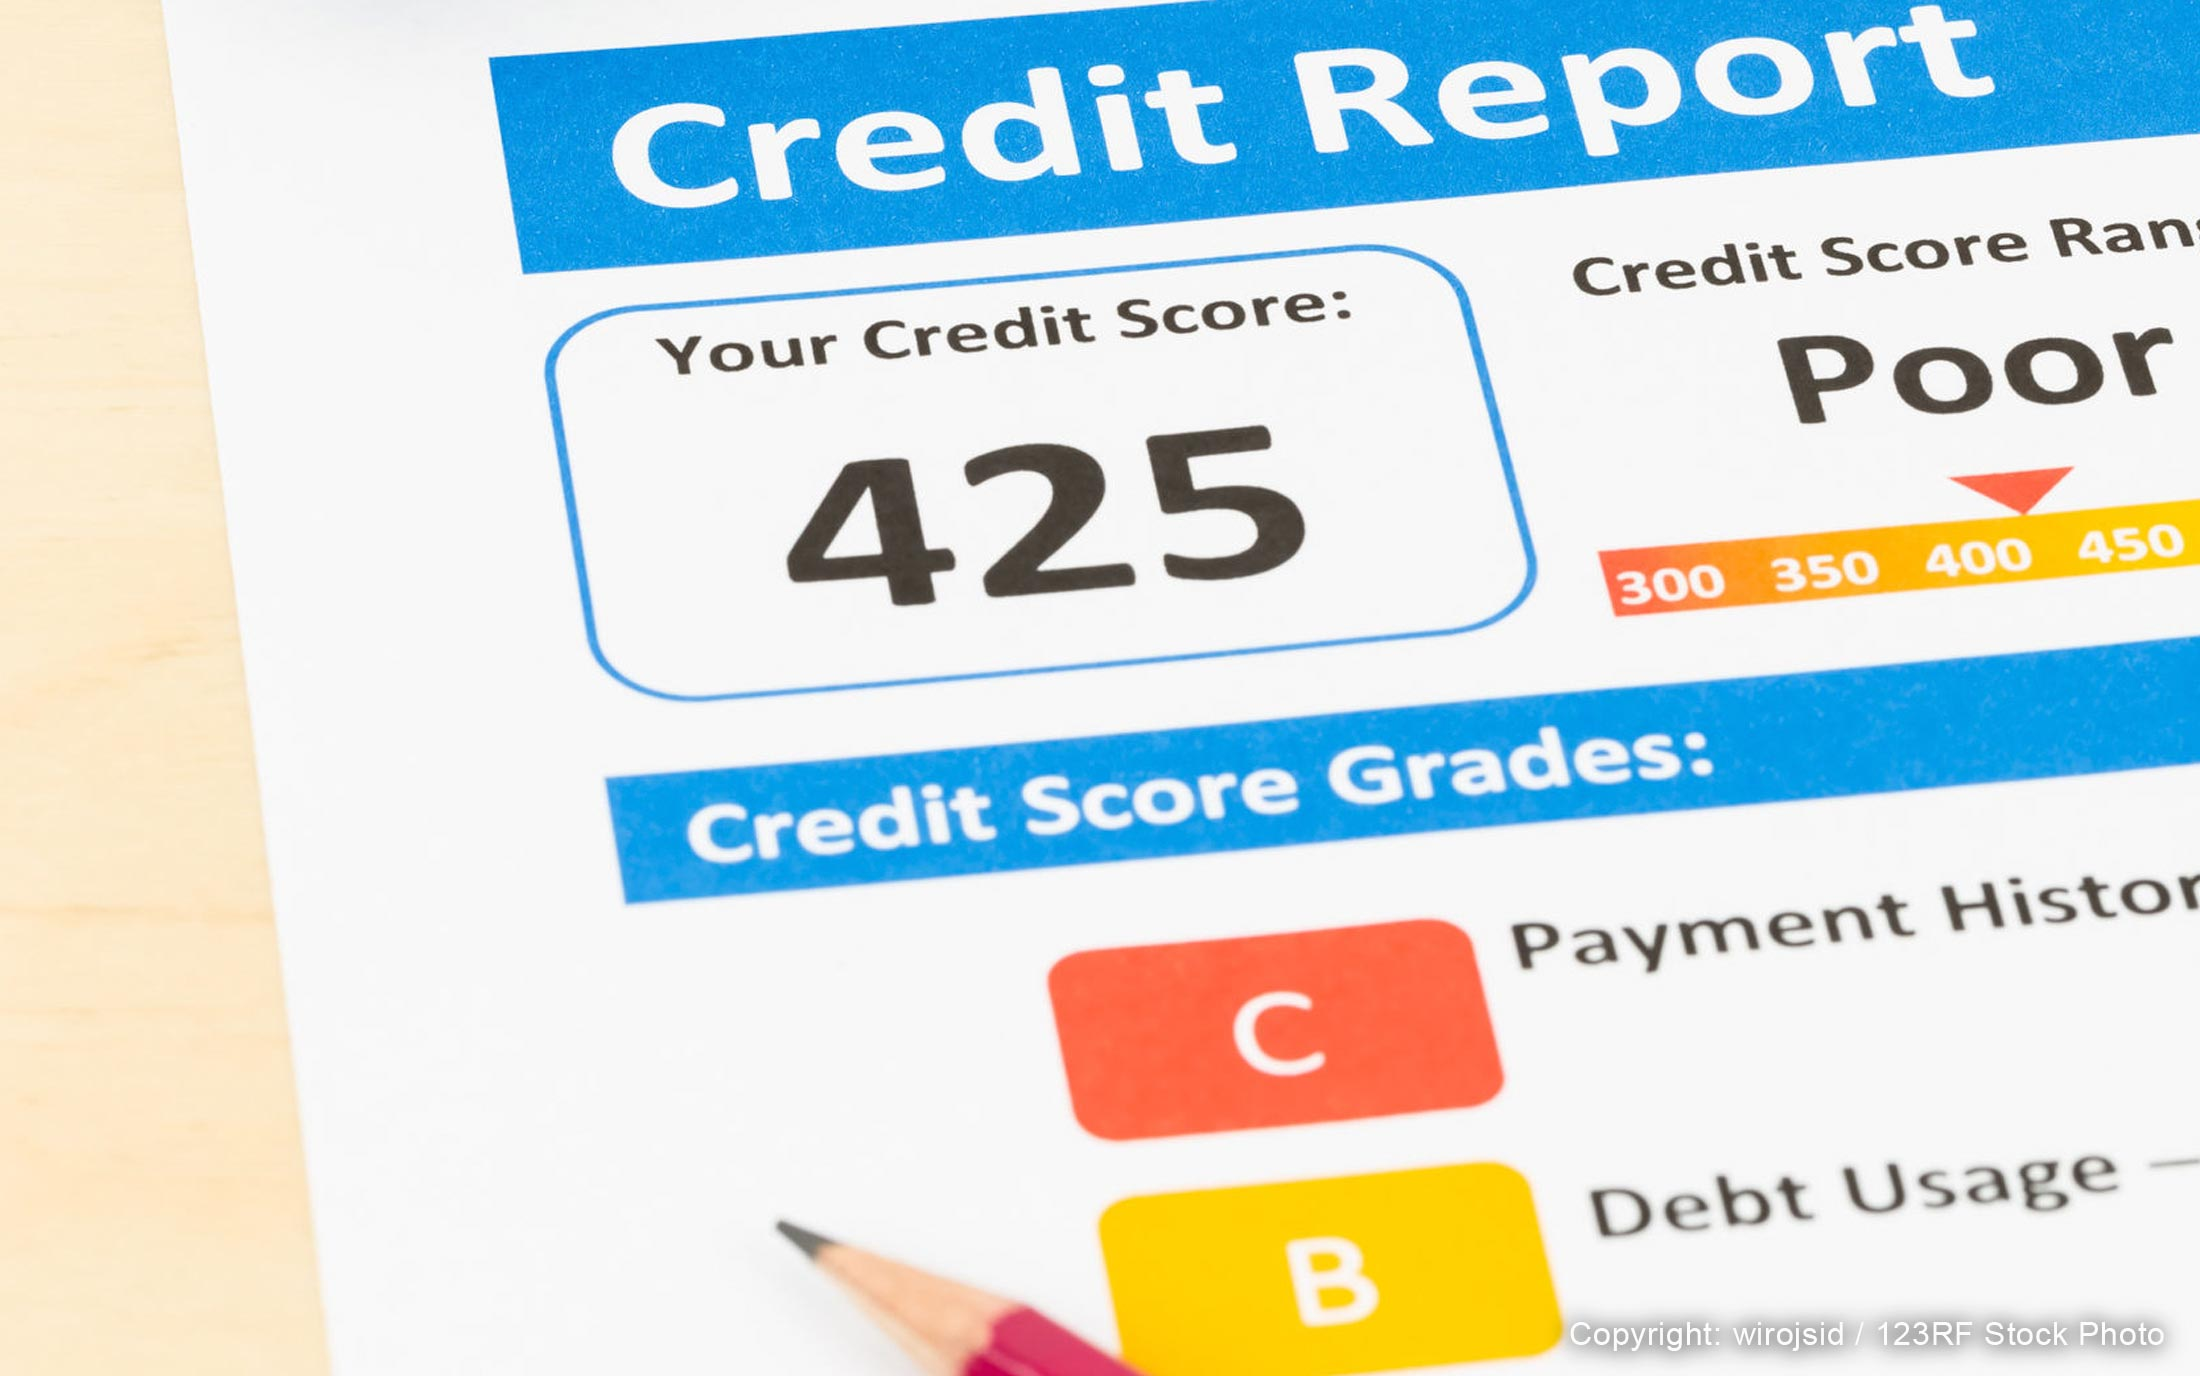 A Credit Card is Another Personal Loan Option